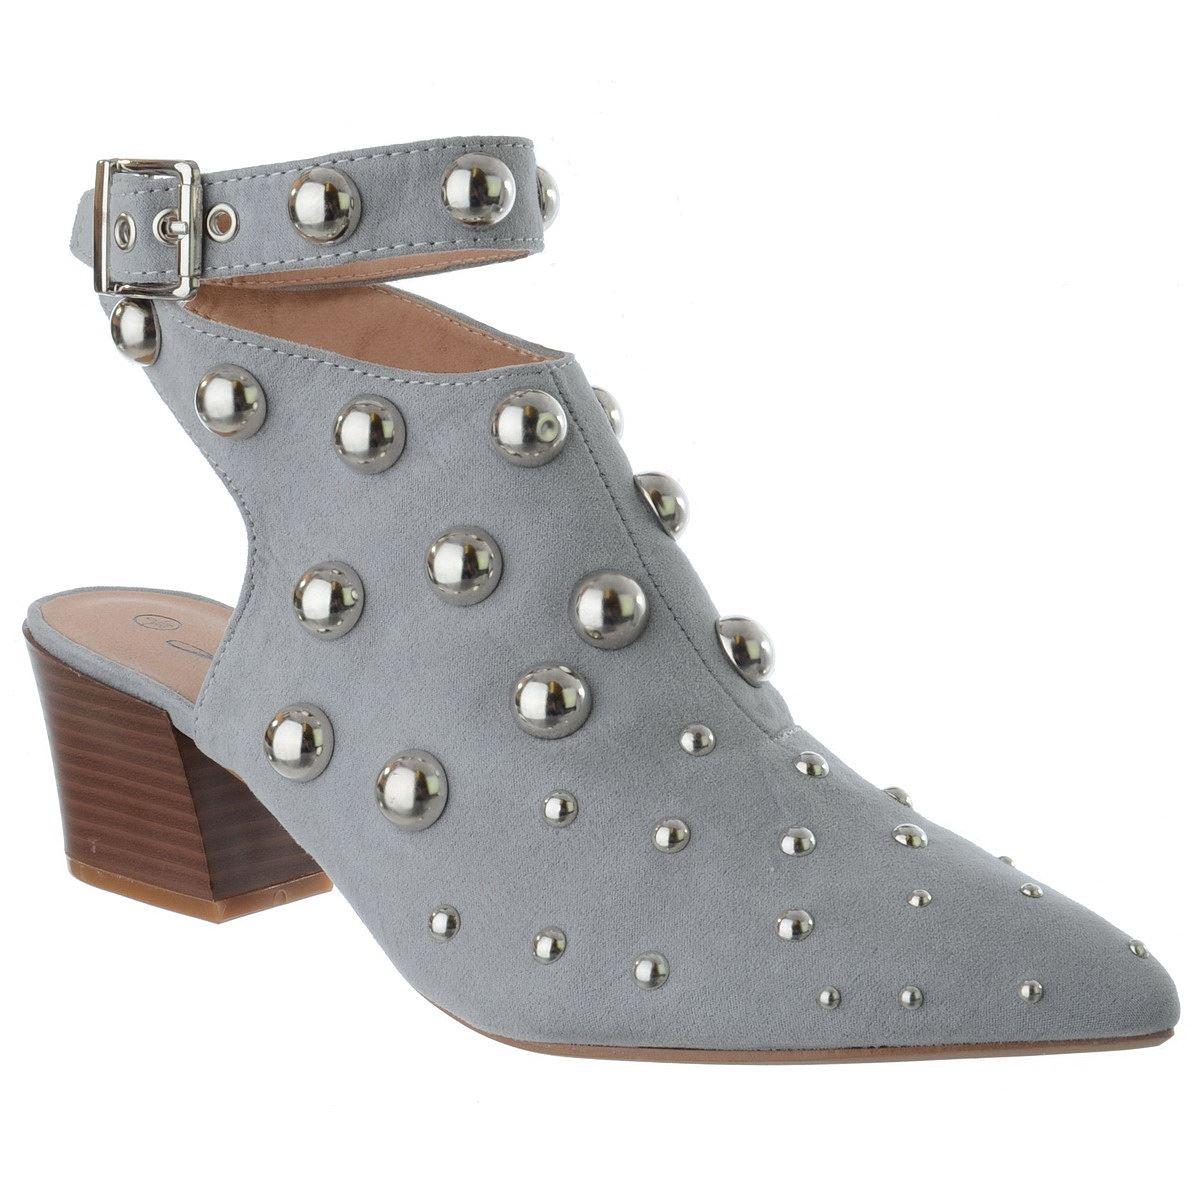 WOMENS-MID-LOW-BLOCK-HEEL-STUDS-POINTY-TOE-ANKLE-STRAP-LADIES-SHOE-BOOTS-SIZE